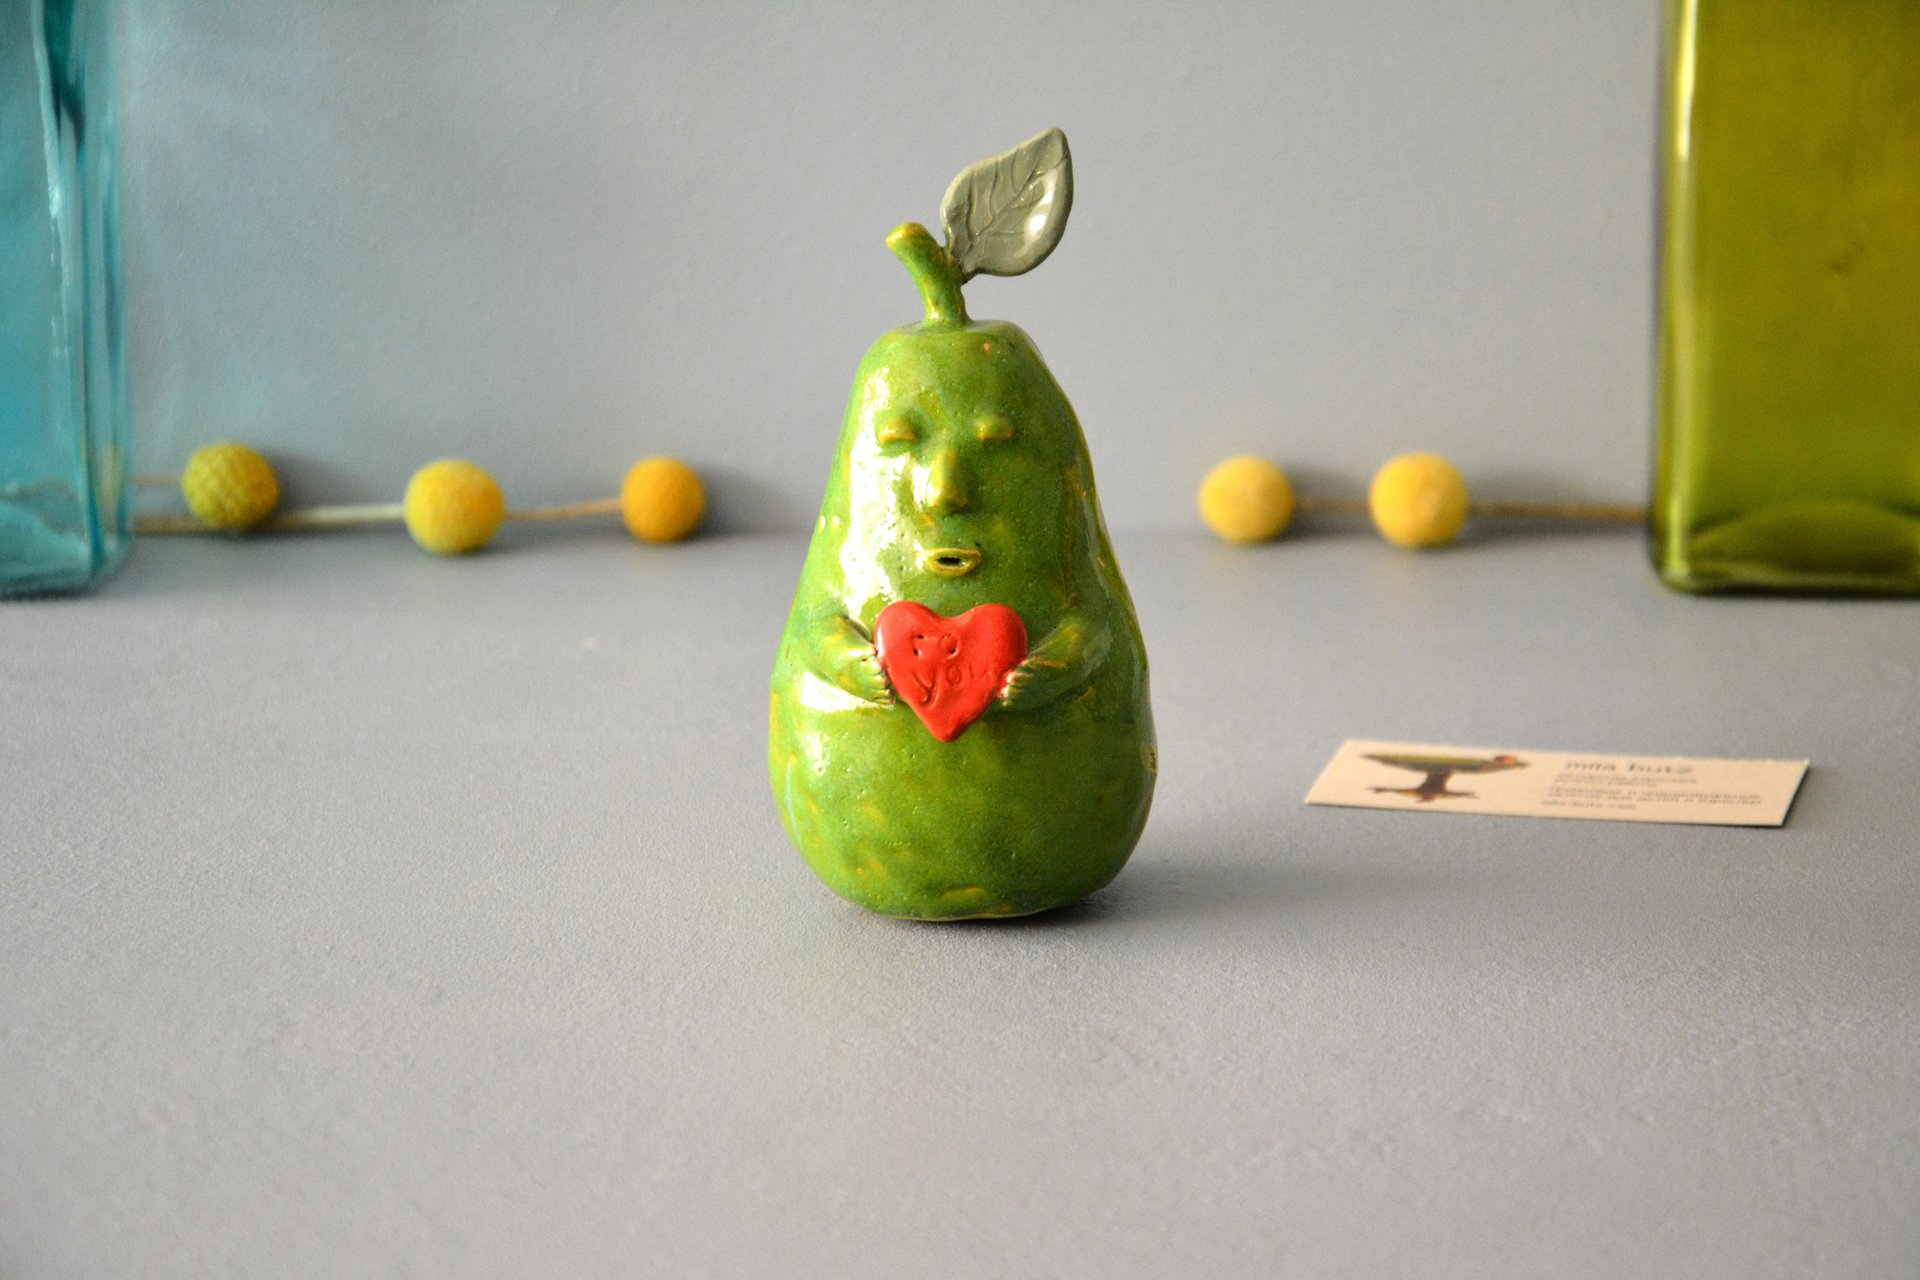 Pear with Love - Ceramic other figures, height - 12 cm, photo 1 of 5.